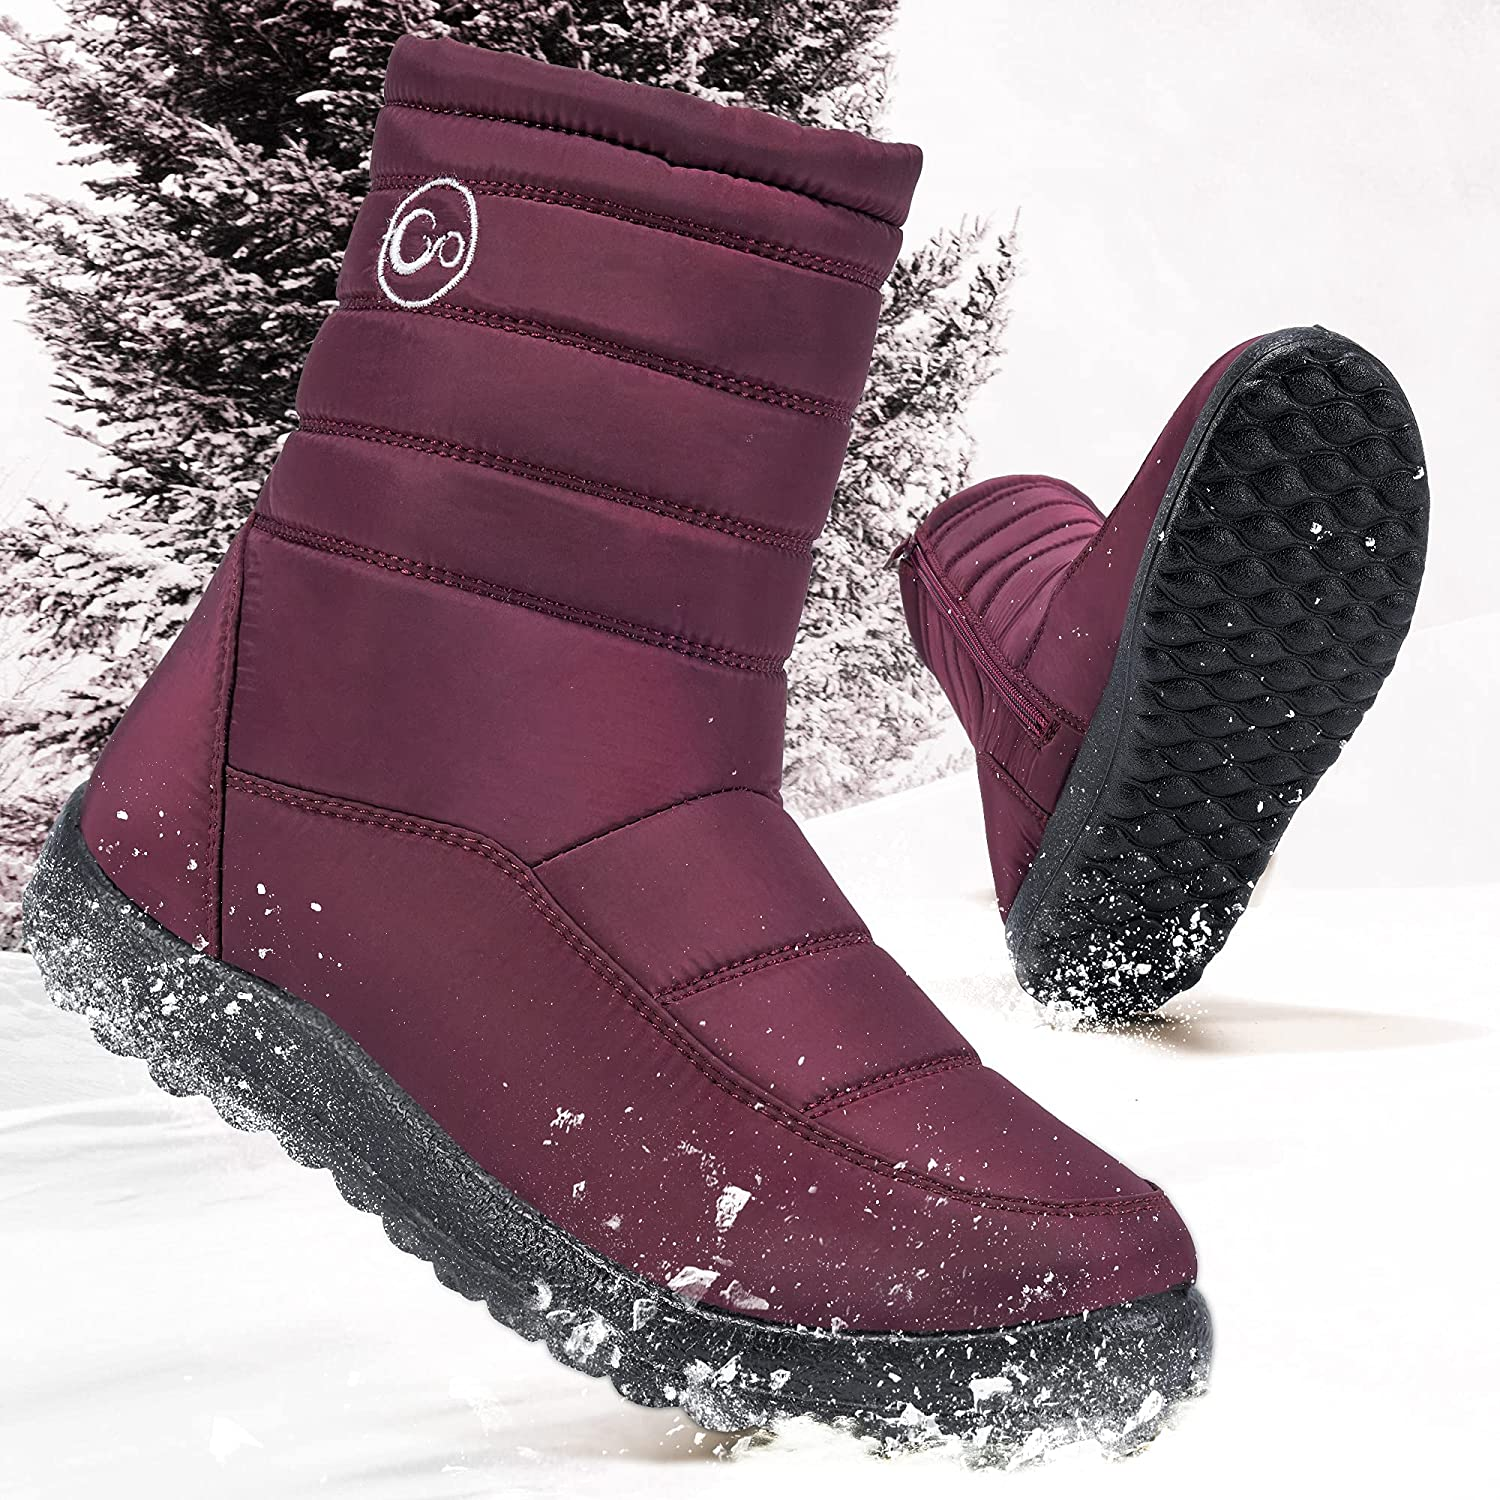 Womens Winter Snow Boots for Women with Arch Support Outdoor Warm Fur Lining Ankle Booties Zipper Waterproof Comfortable Shoes